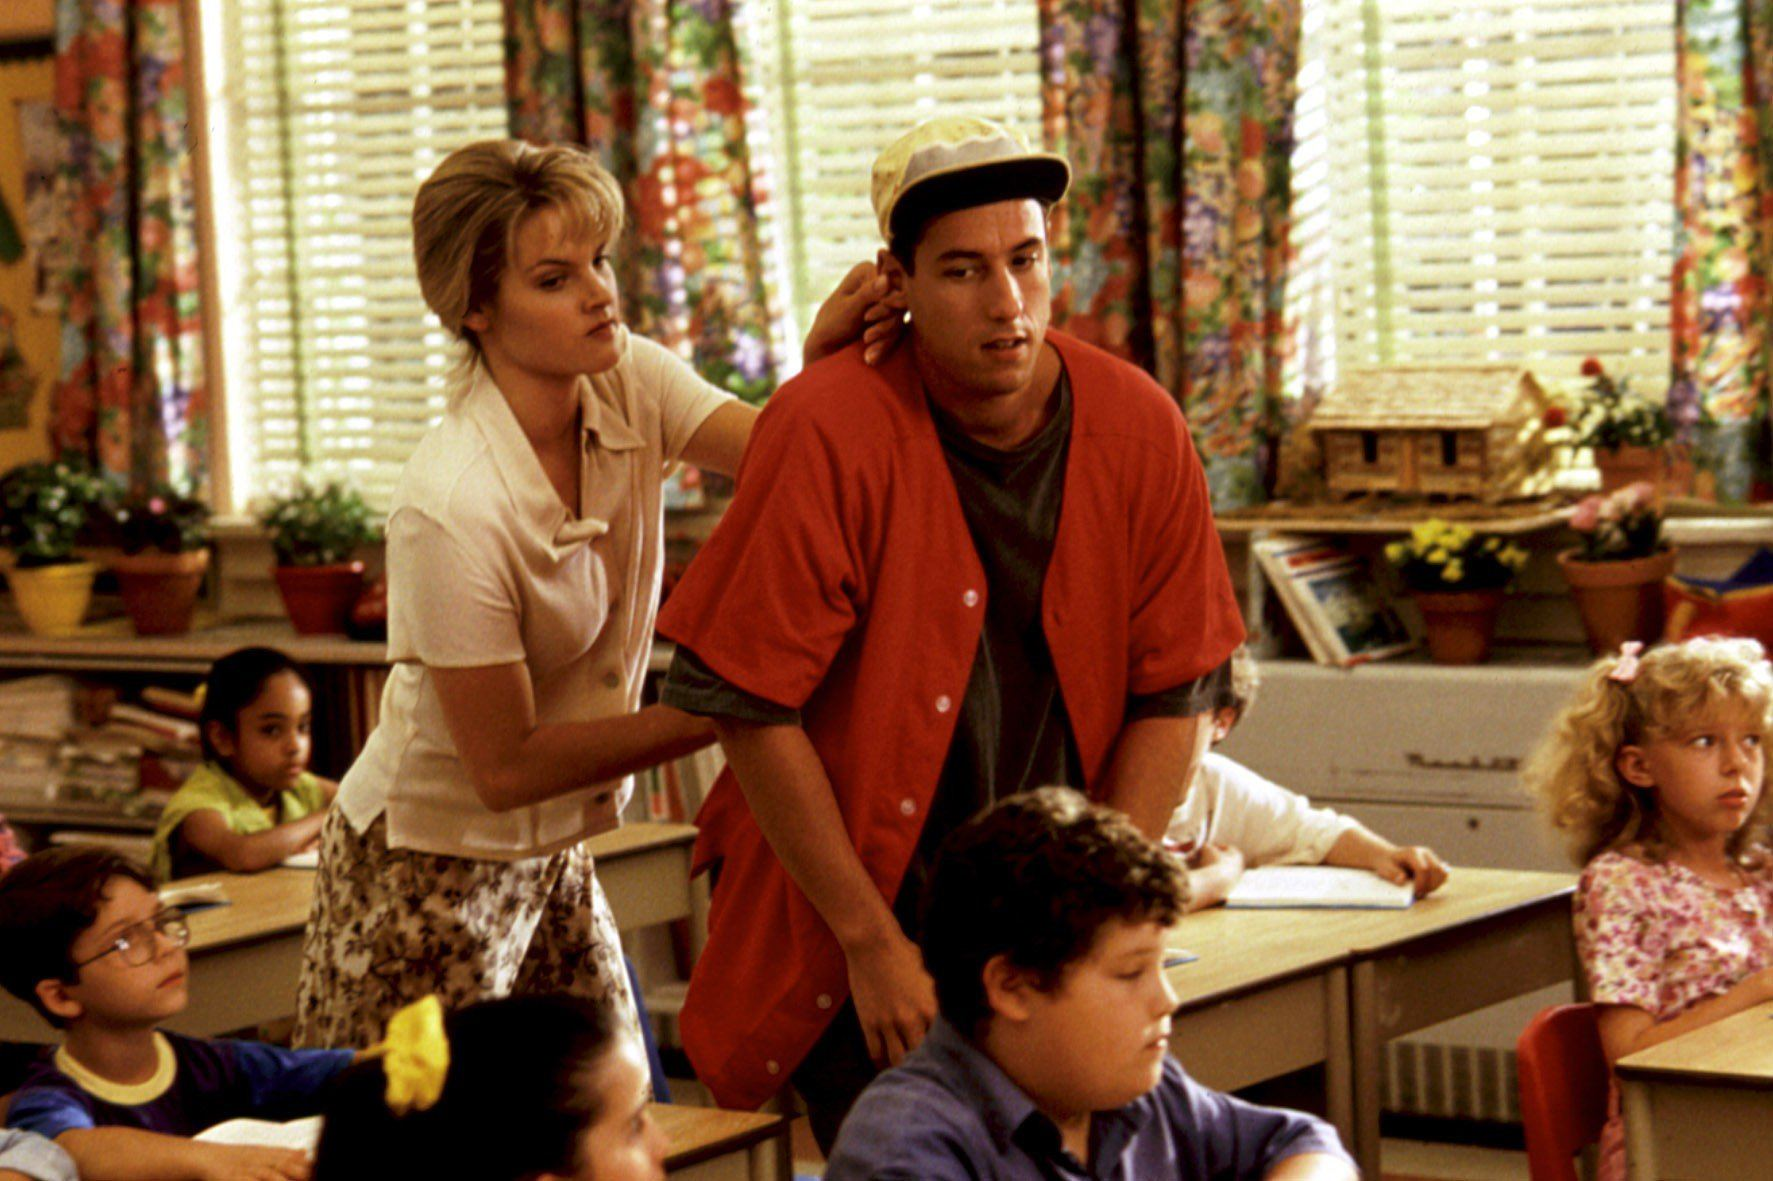 Veronica Vaugh, who had Billy Madison hot for teacher in 'Billy Madison, used the poor man's sex drive against him to help him achieve